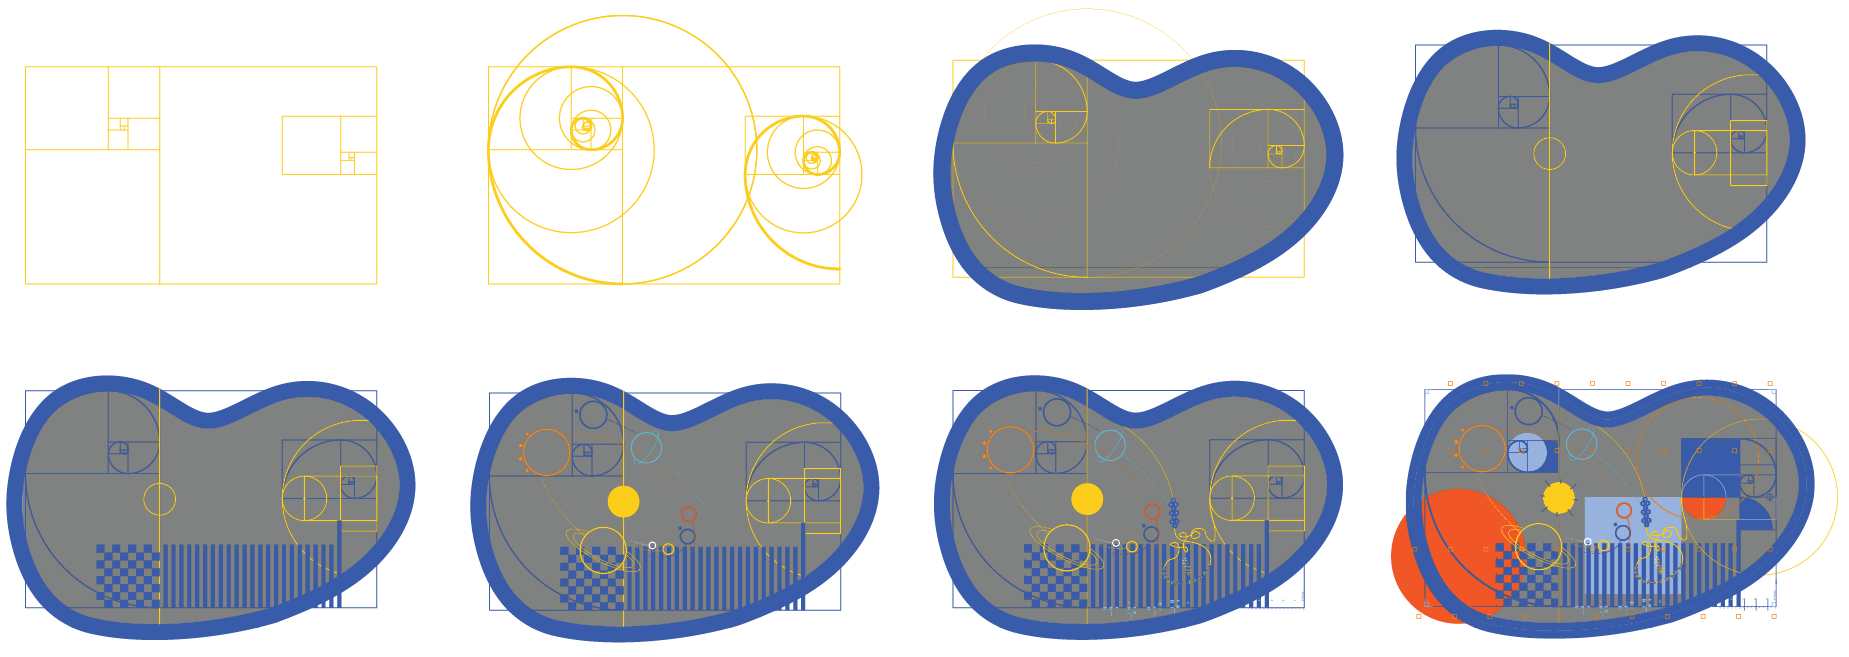 Painting sequence of the learning island, showing the underlying construction lines governing the design using golden rectangles and circles.